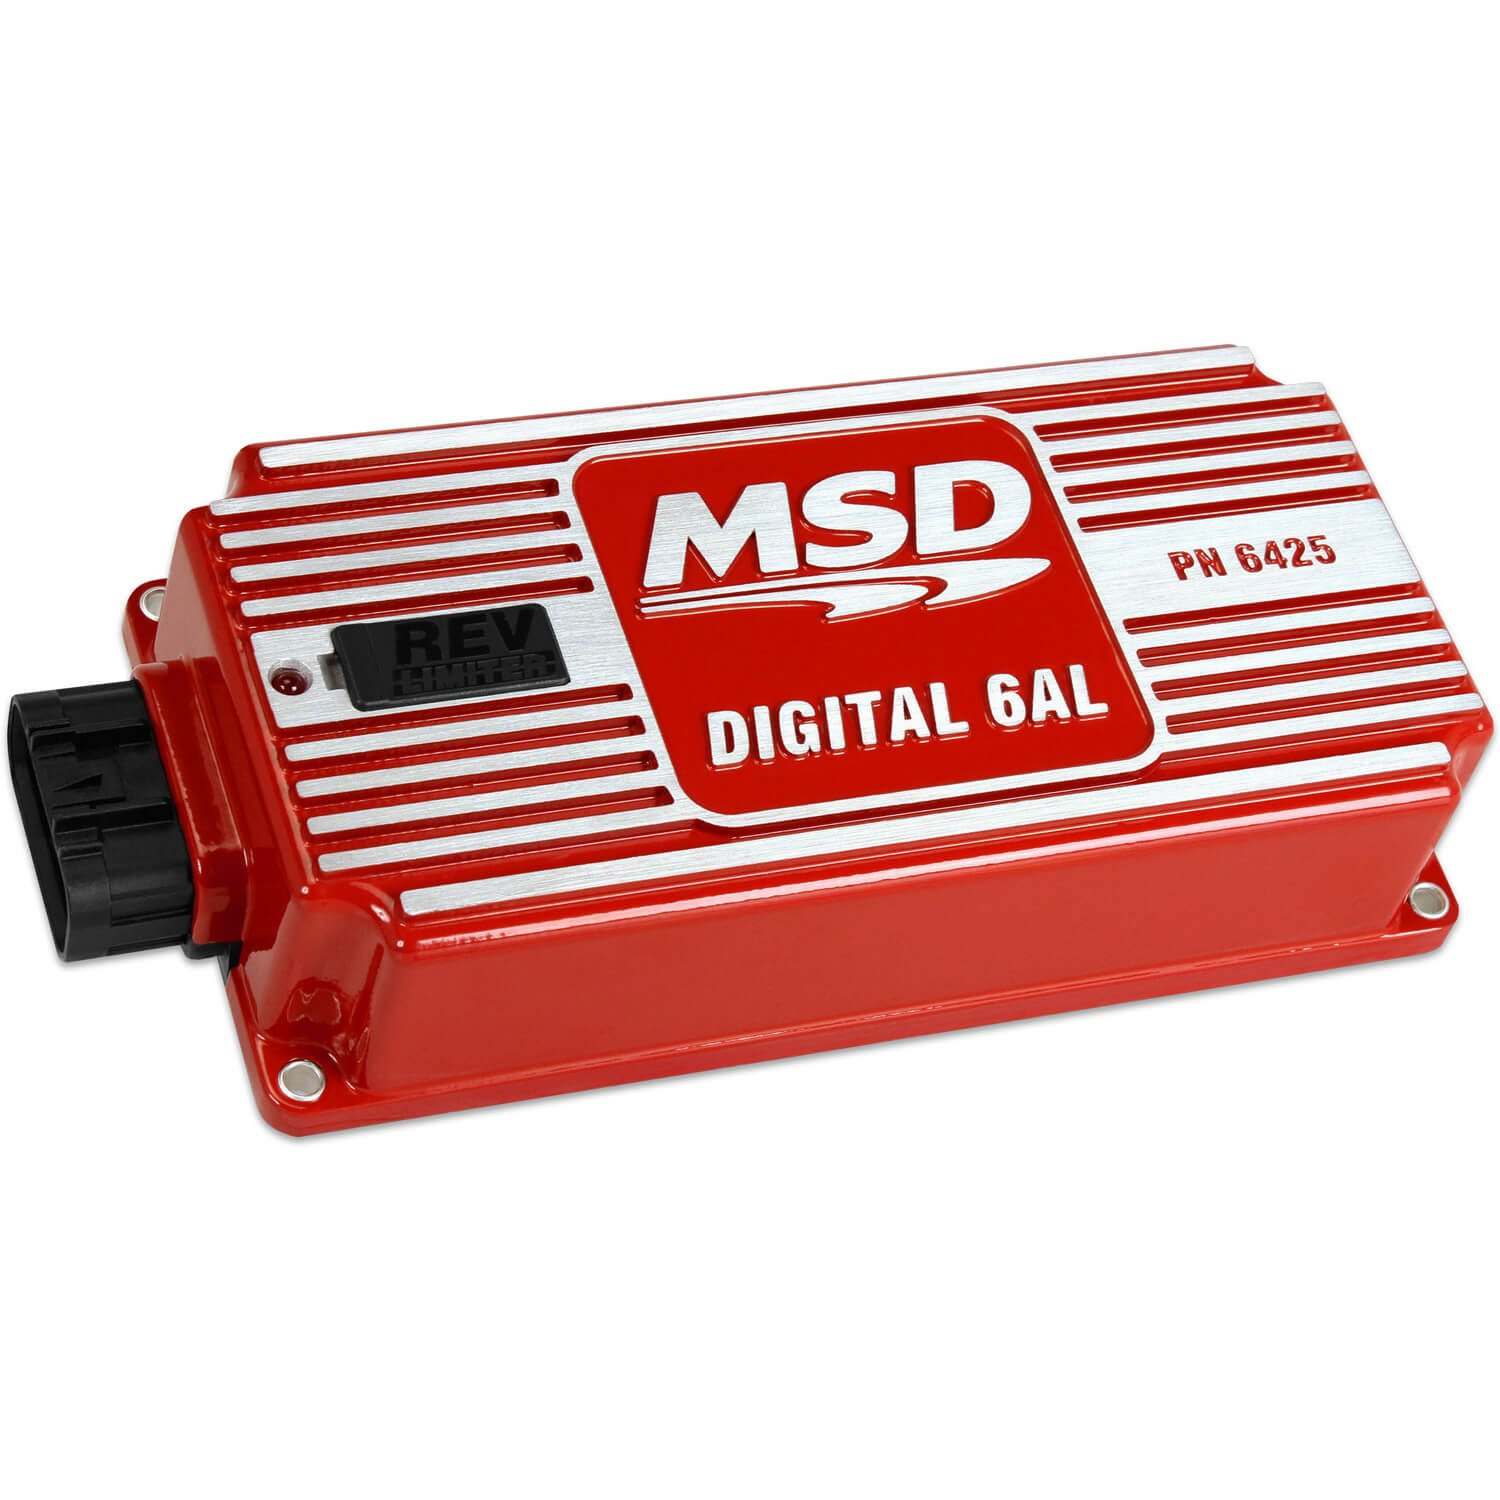 6425_v1 msd 6425 digital 6al ignition control msd performance products msd 6425 wiring diagram at mifinder.co